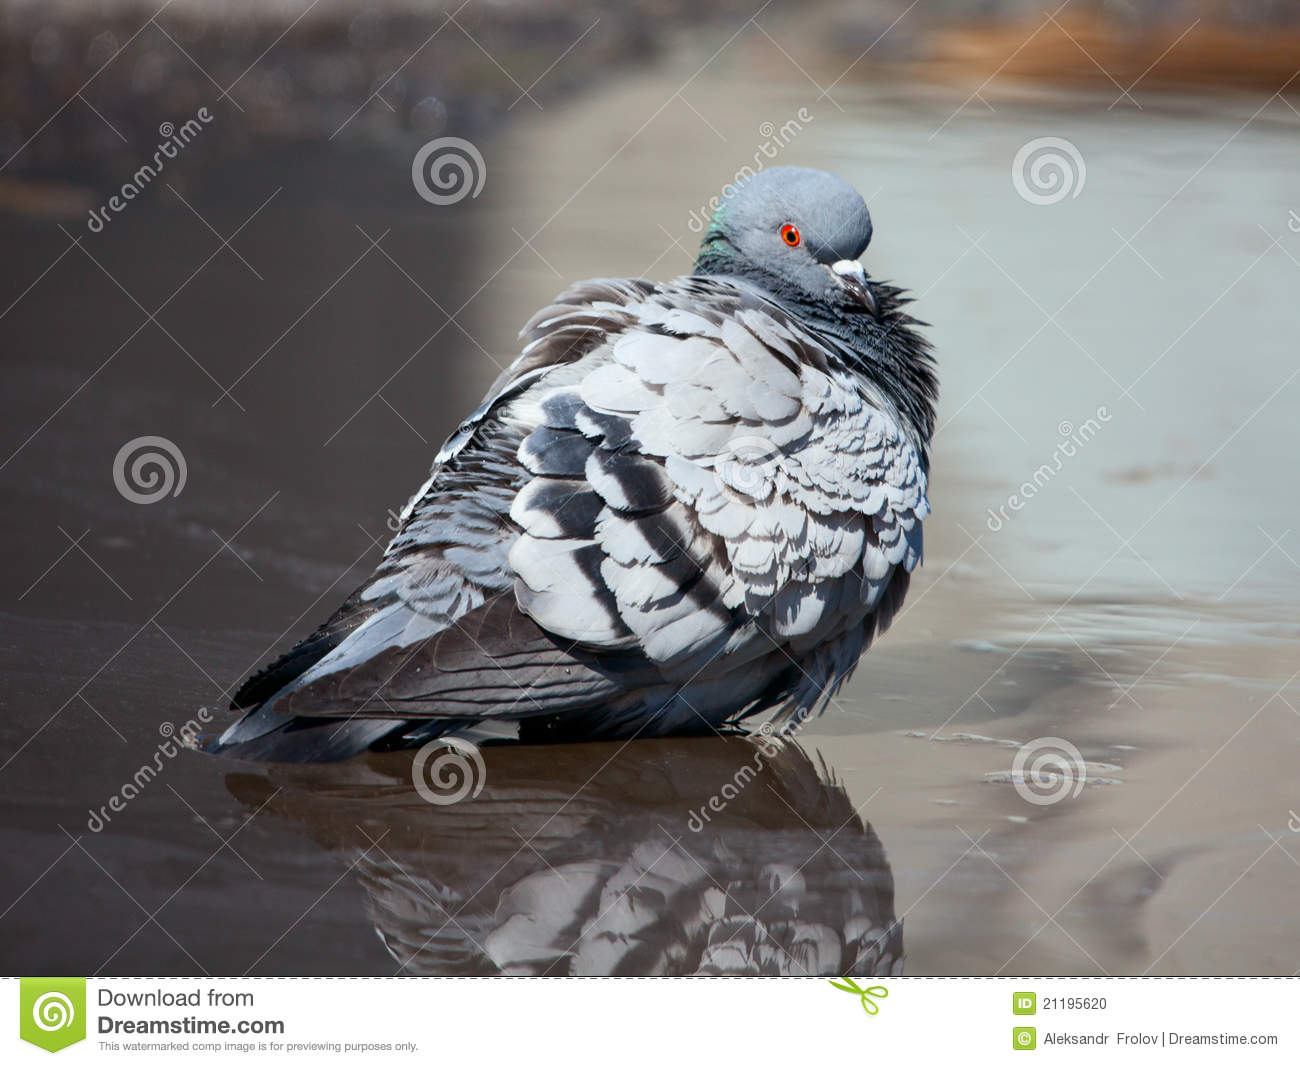 Pigeon cleans its feathers